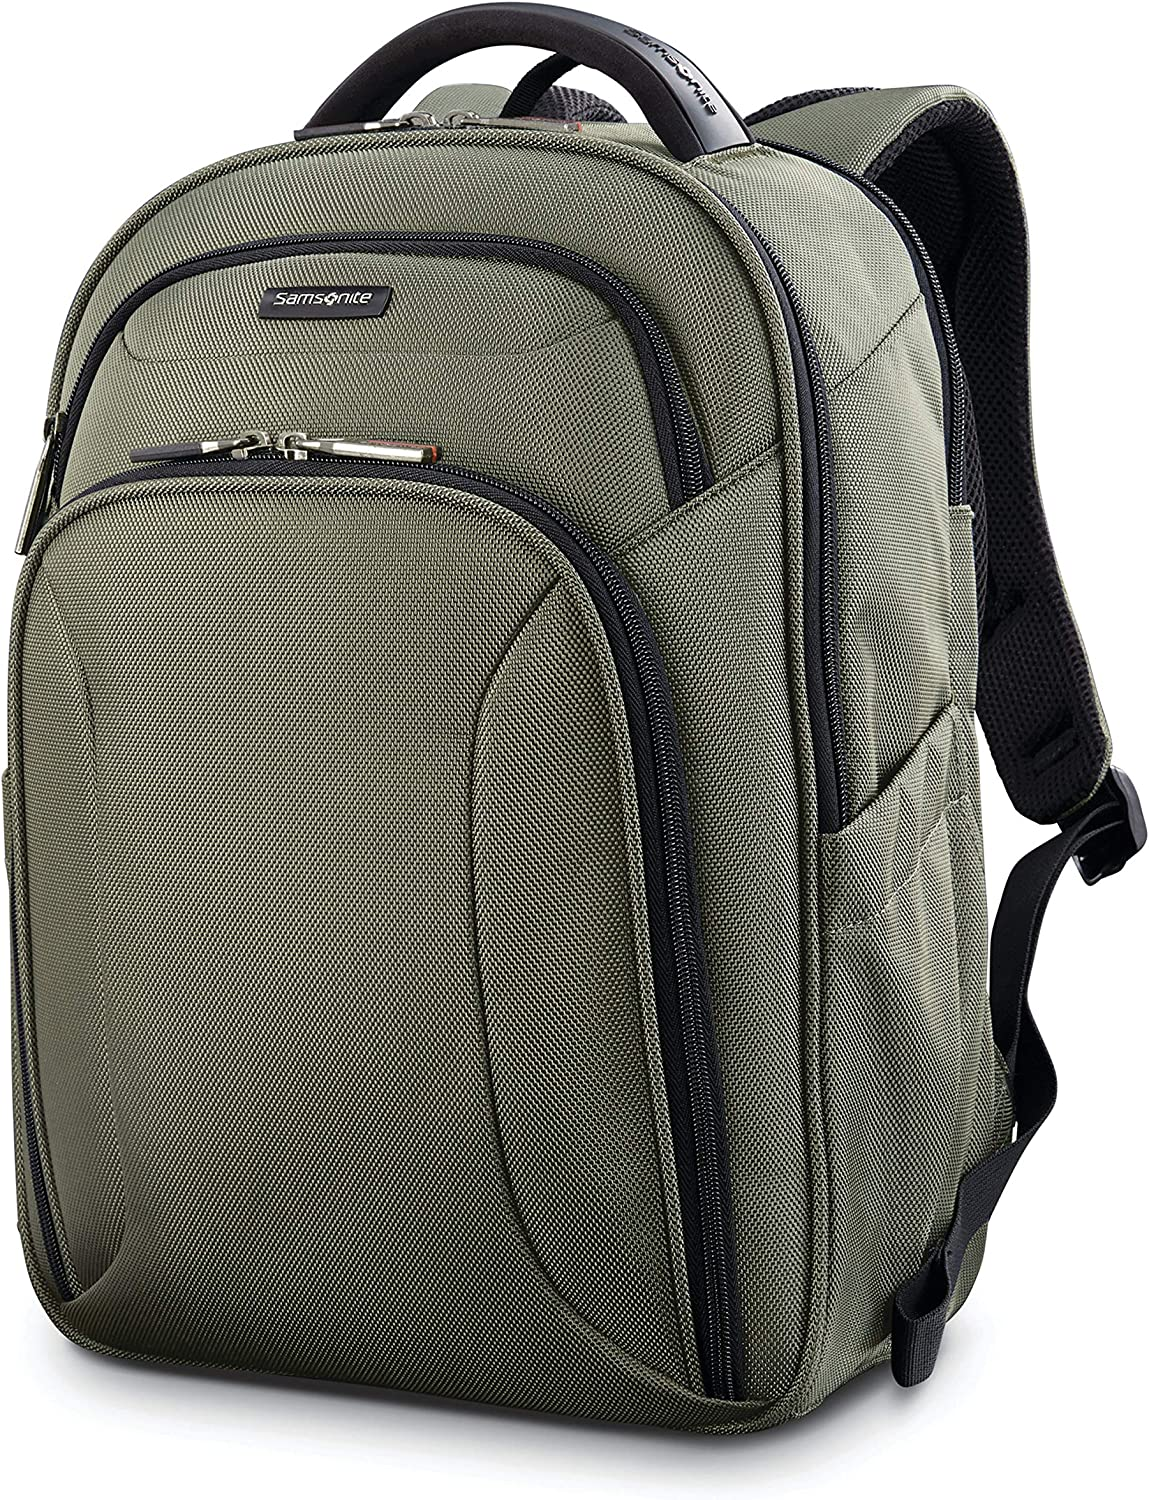 Samsonite Xenon 3.0 Checkpoint Friendly Backpack, Sage Green, Medium